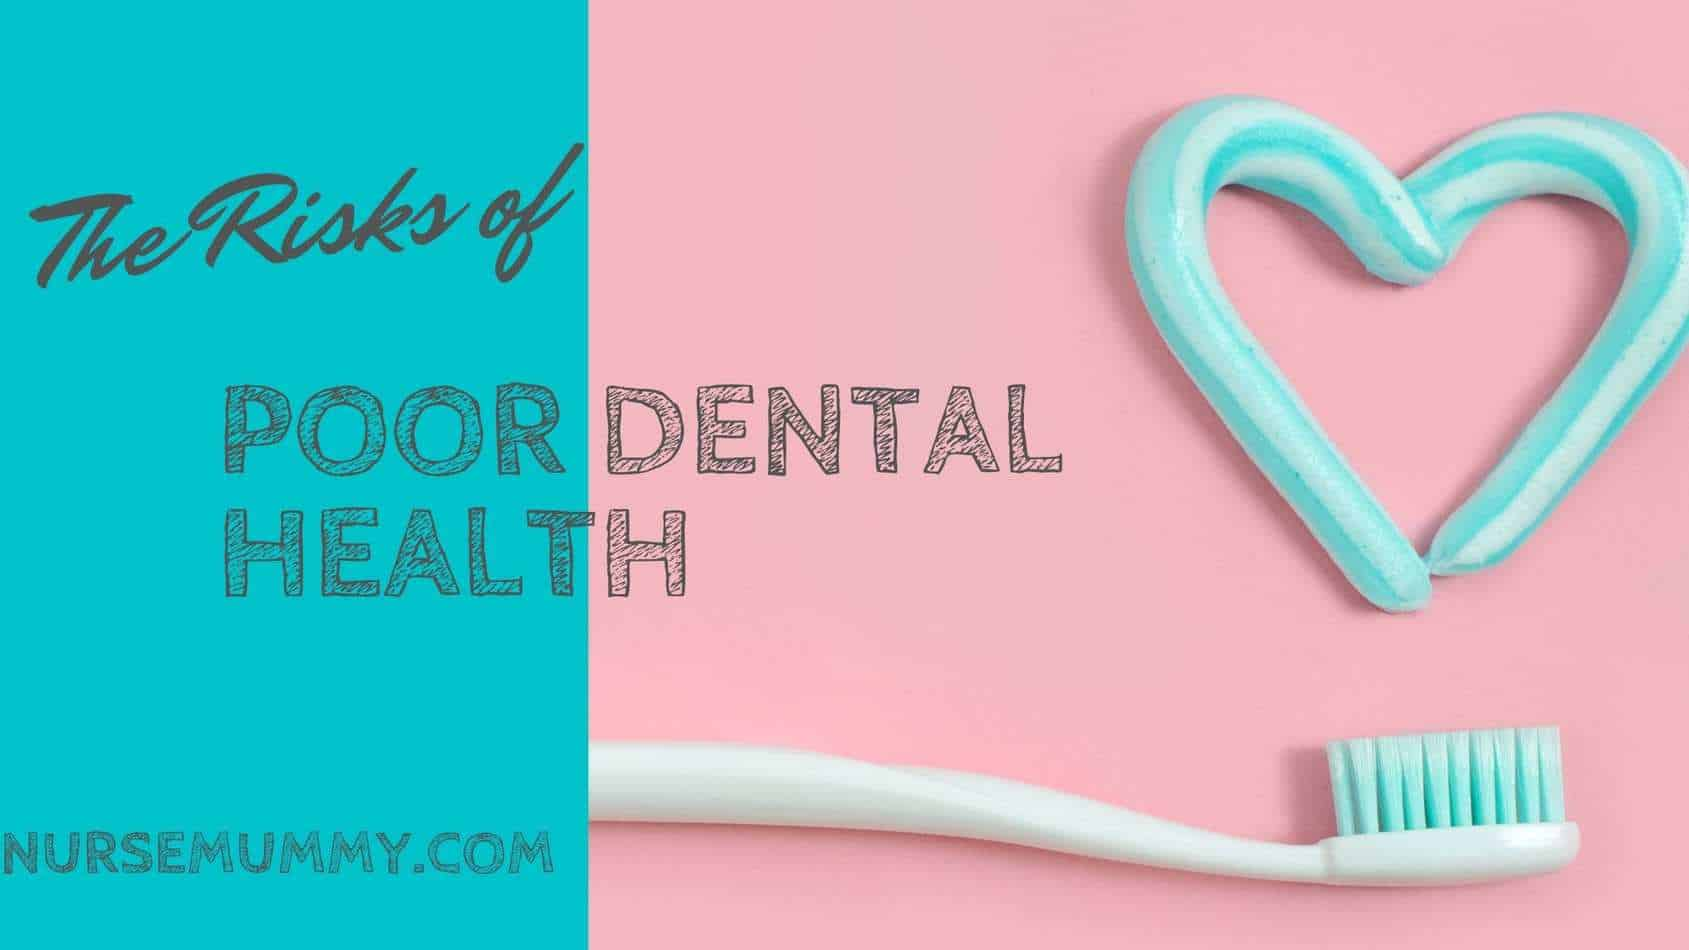 The risks of poor dental health. Poor health issues from poor teeth and dental hygiene